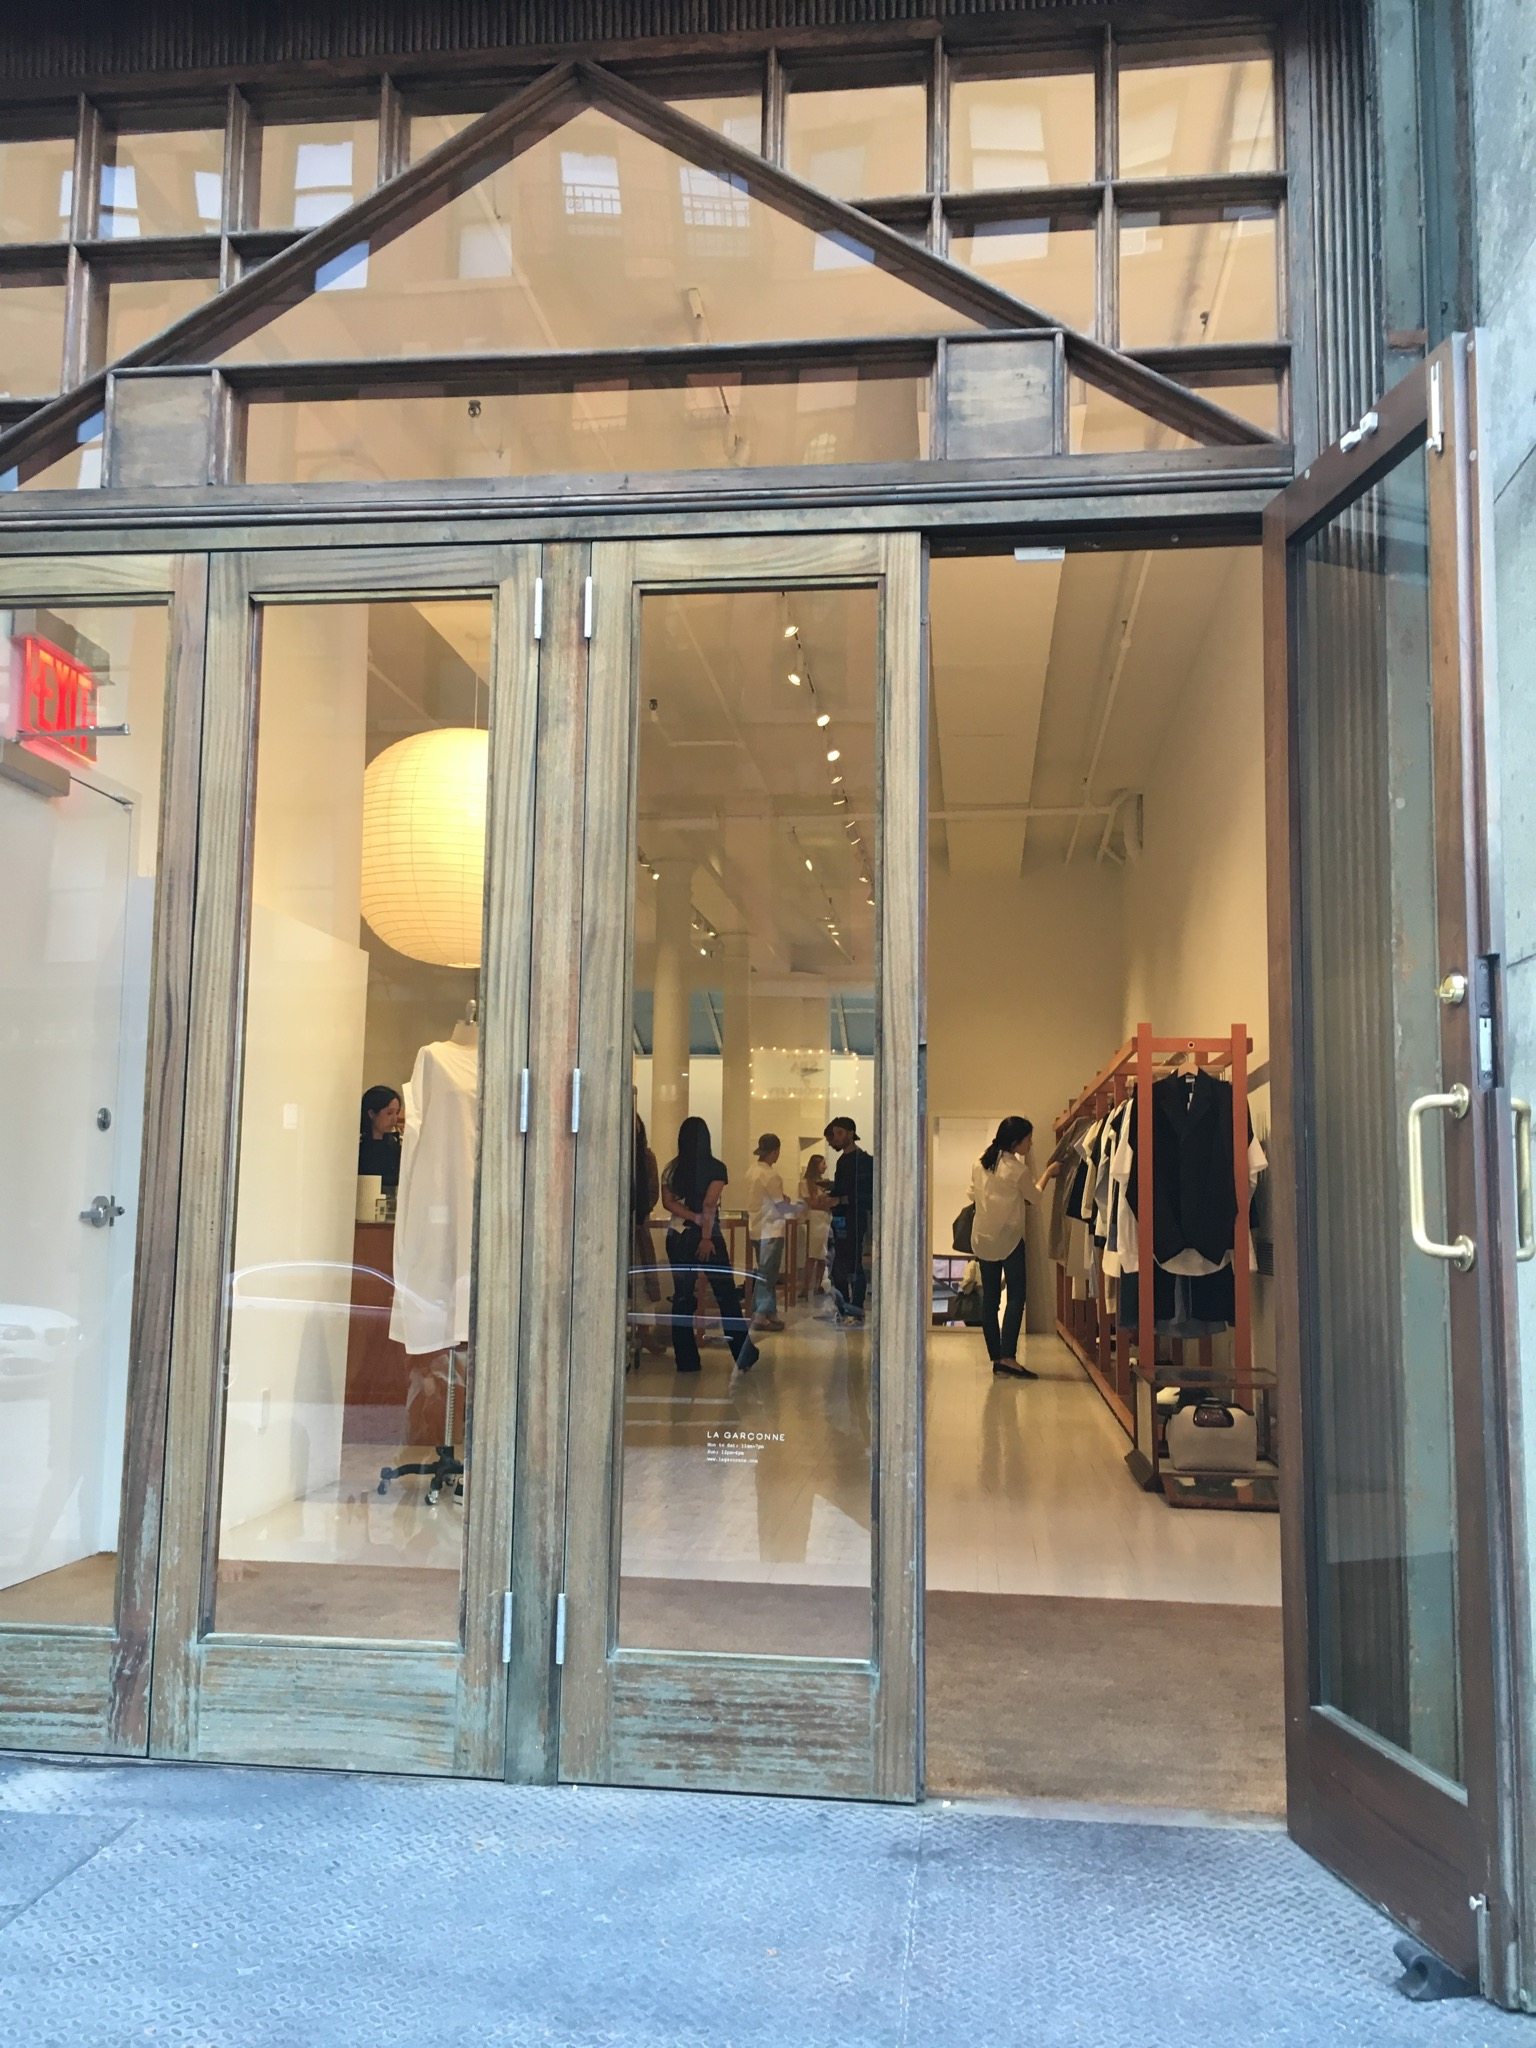 La Garconne is one of those boutiques you can easily miss out on for avant garde fashion, located in Tribeca.